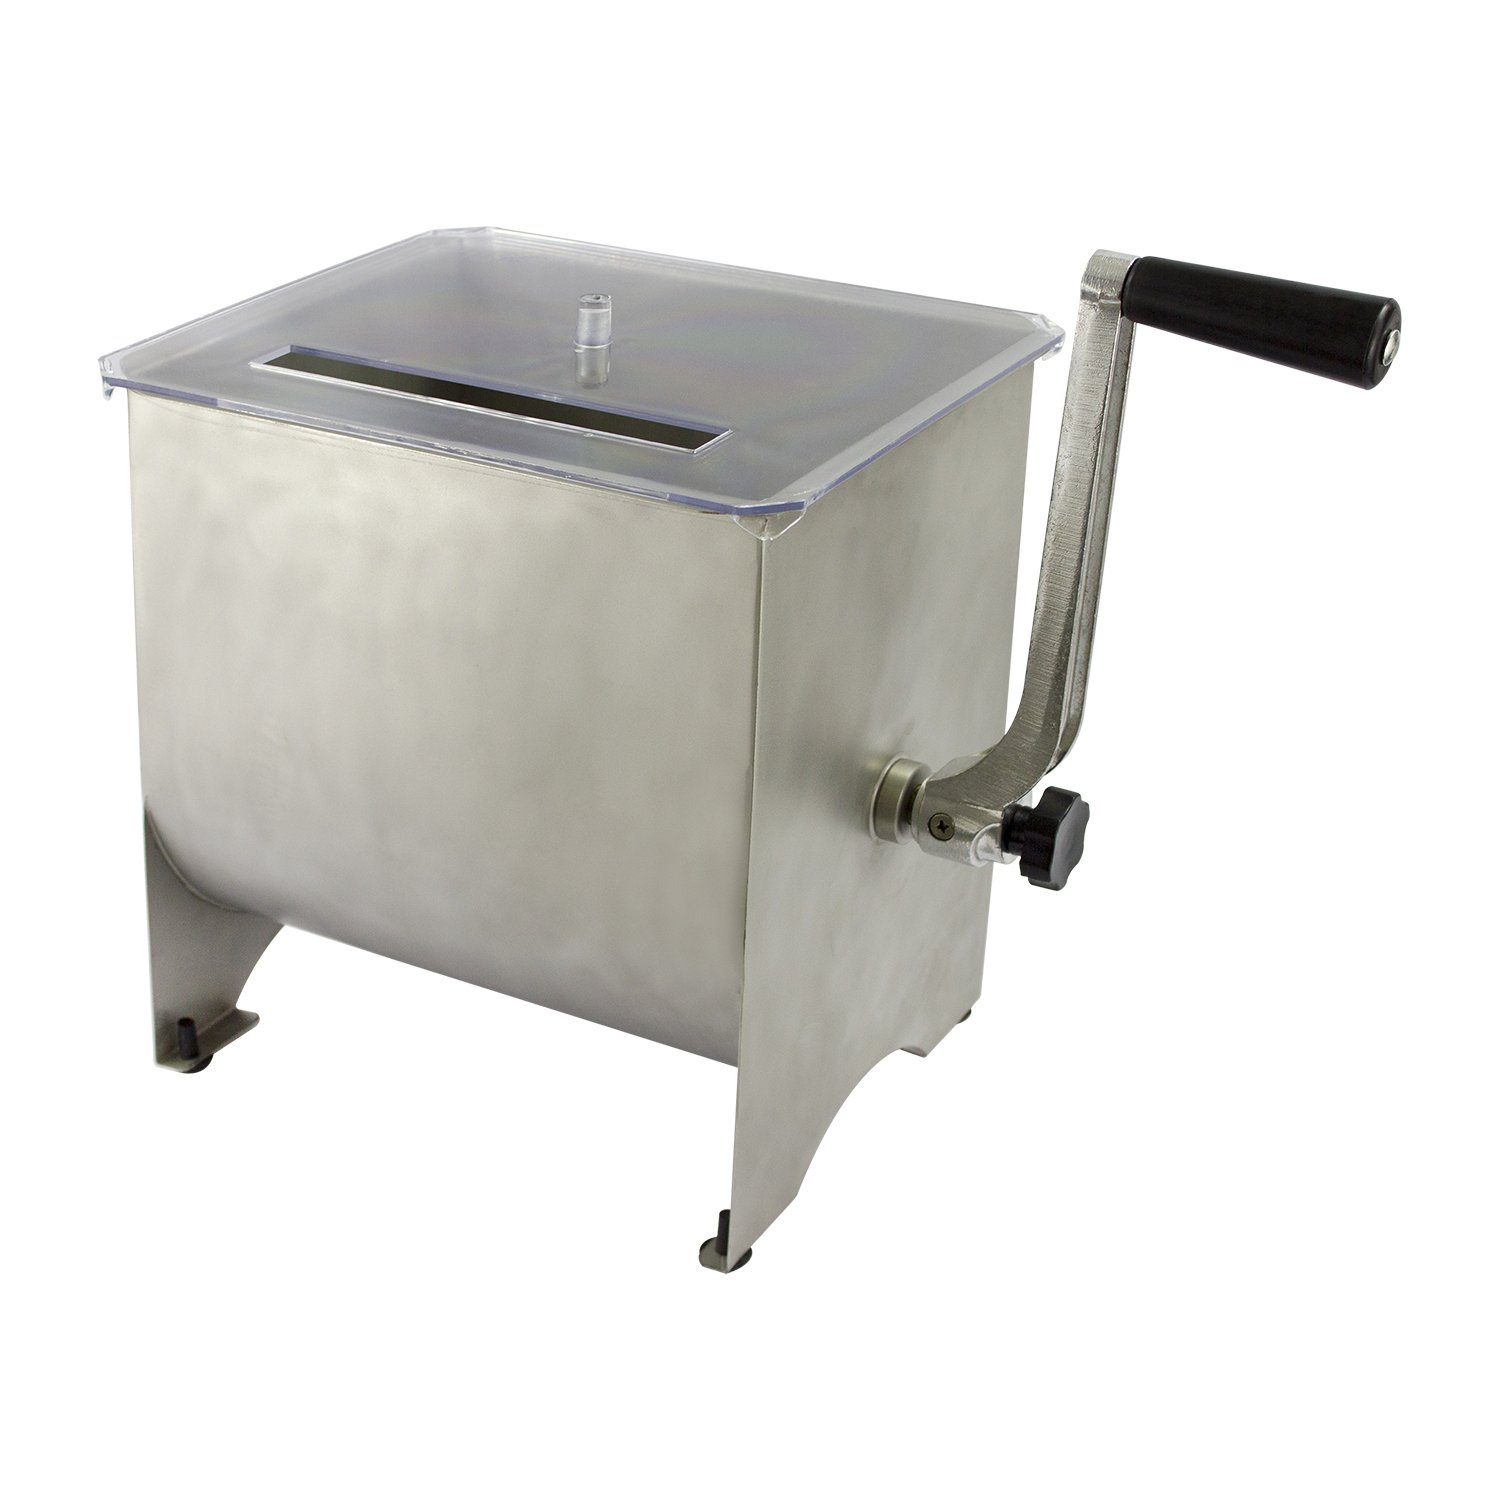 Chard MM-102, Meat Mixer with Stainless Steel Hopper, 20lbs by Chard